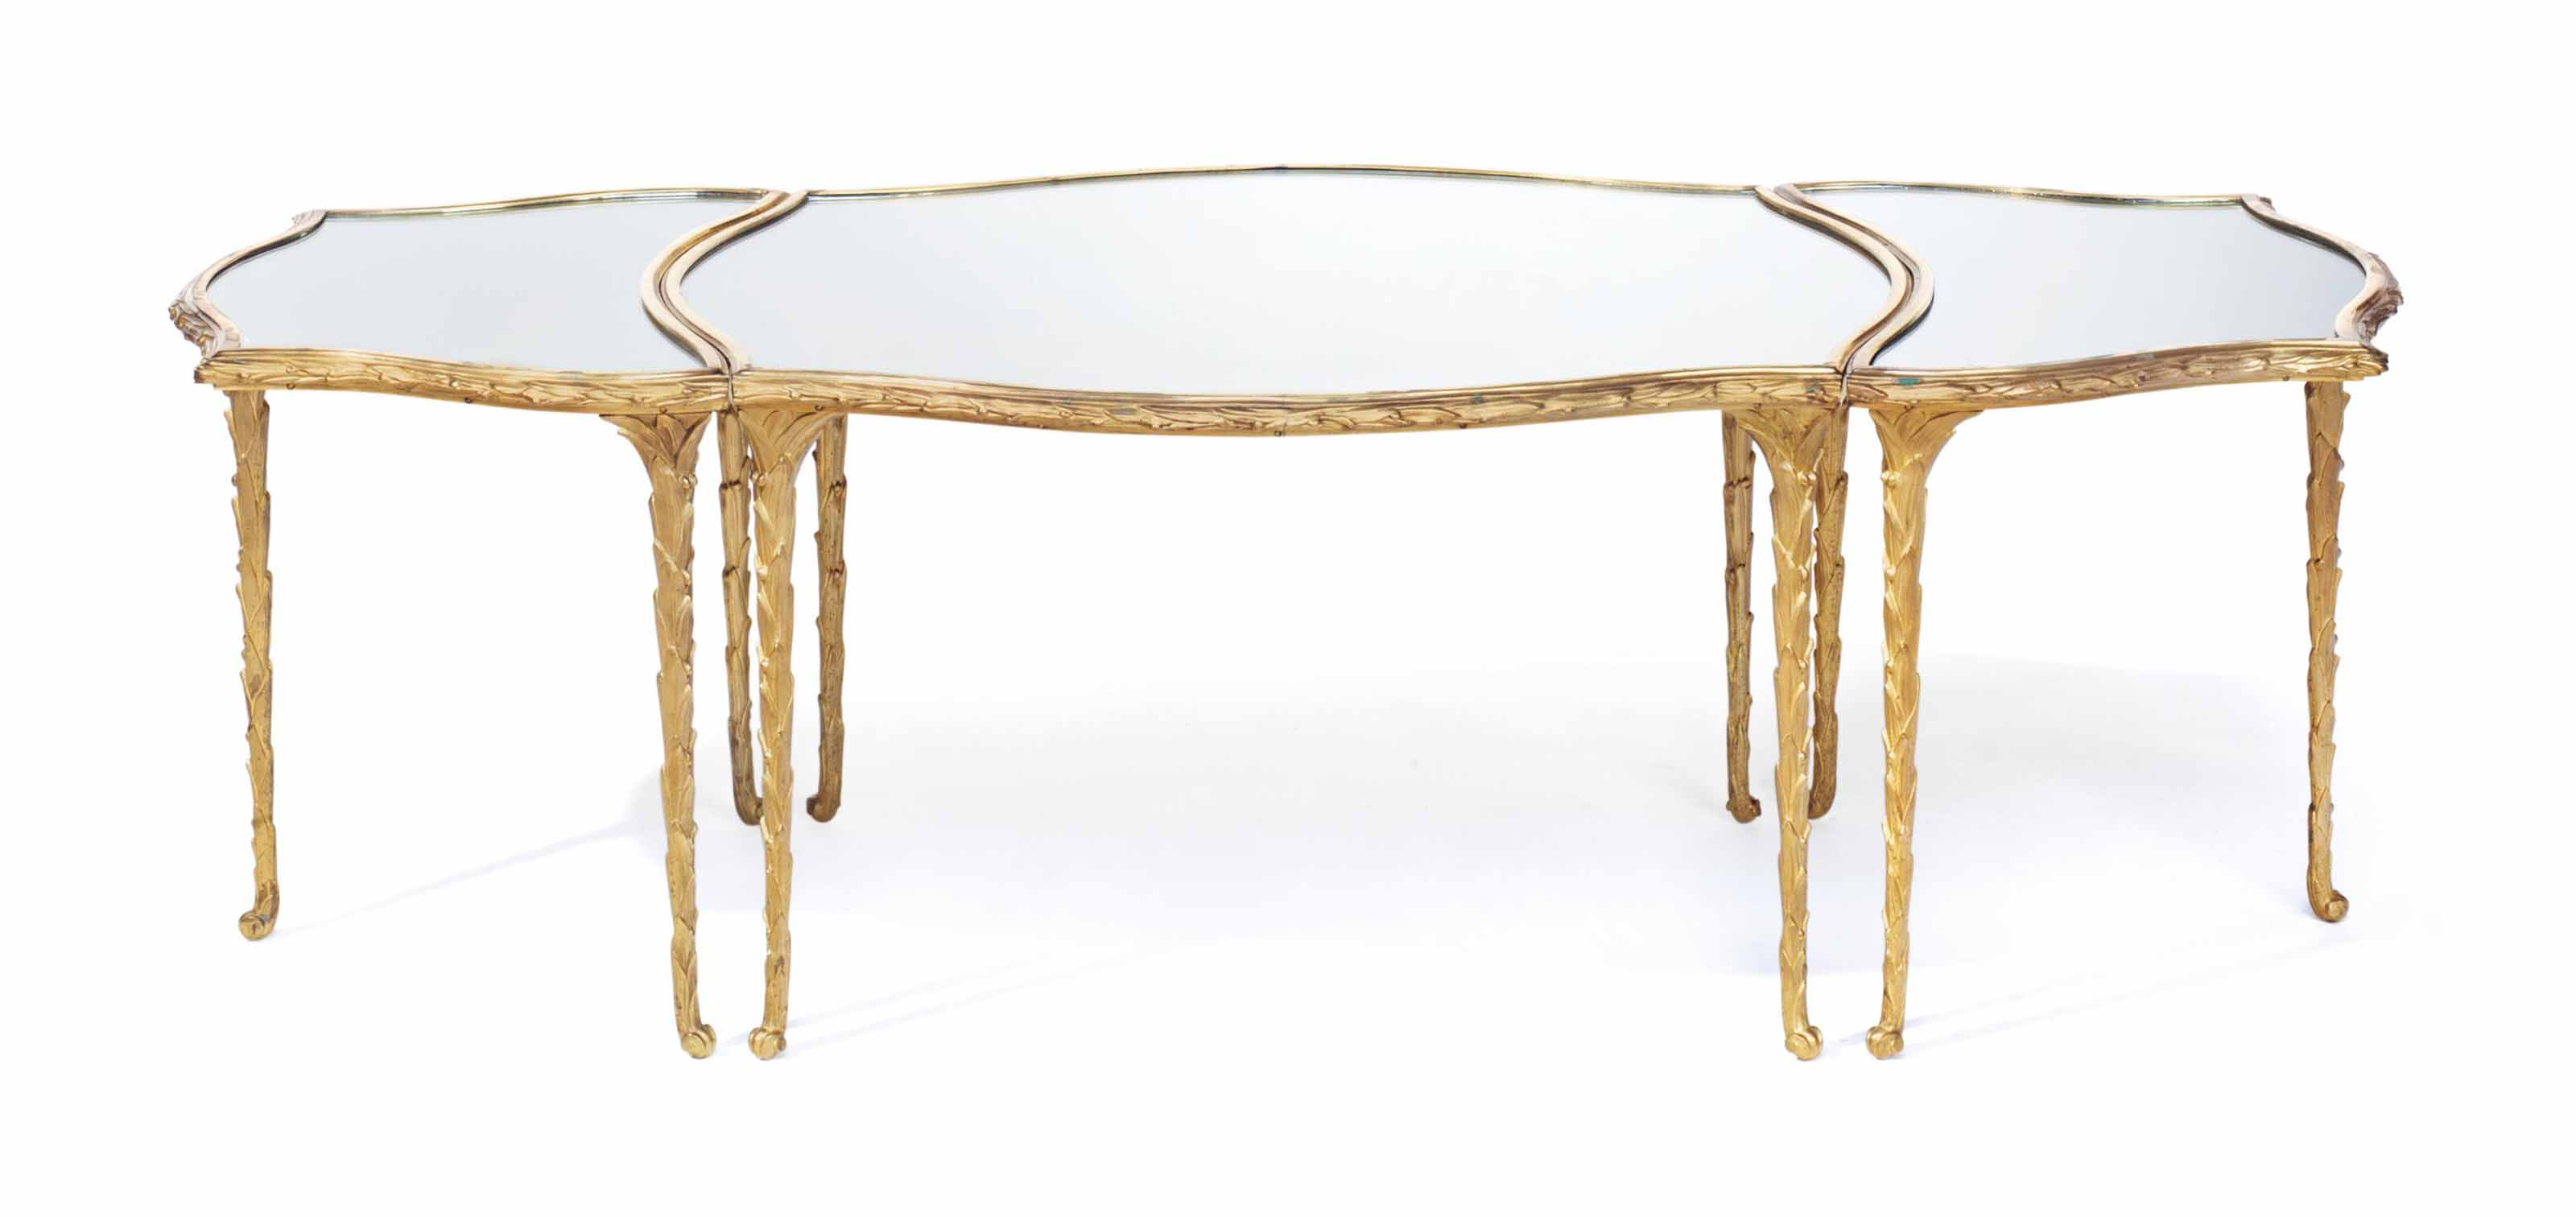 A FRENCH ORMOLU AND MIRRORED G